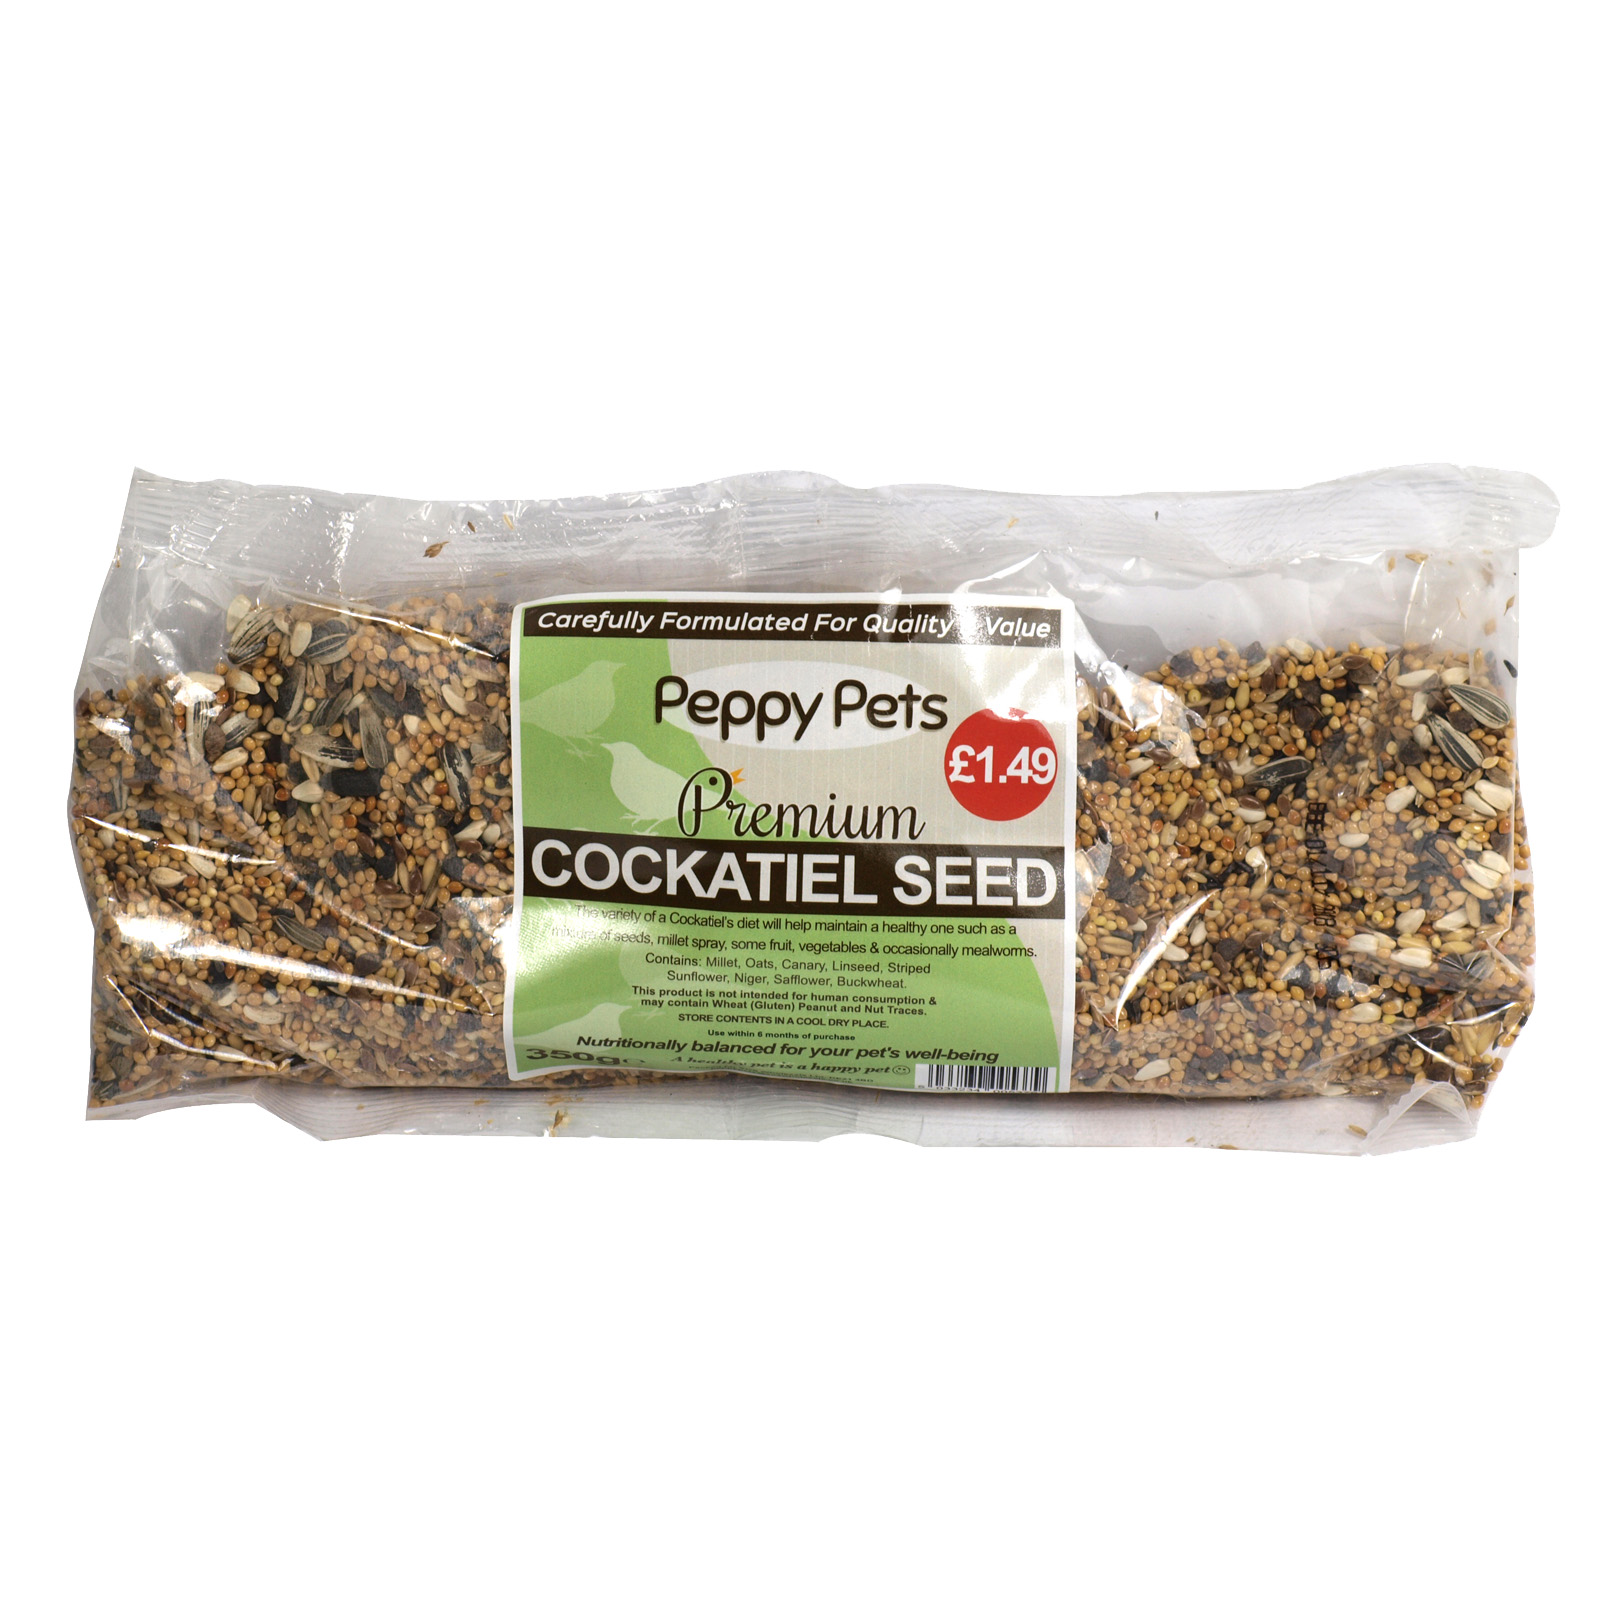 PEPPY PETS COCKATIEL SEED PM?1.49 350GM